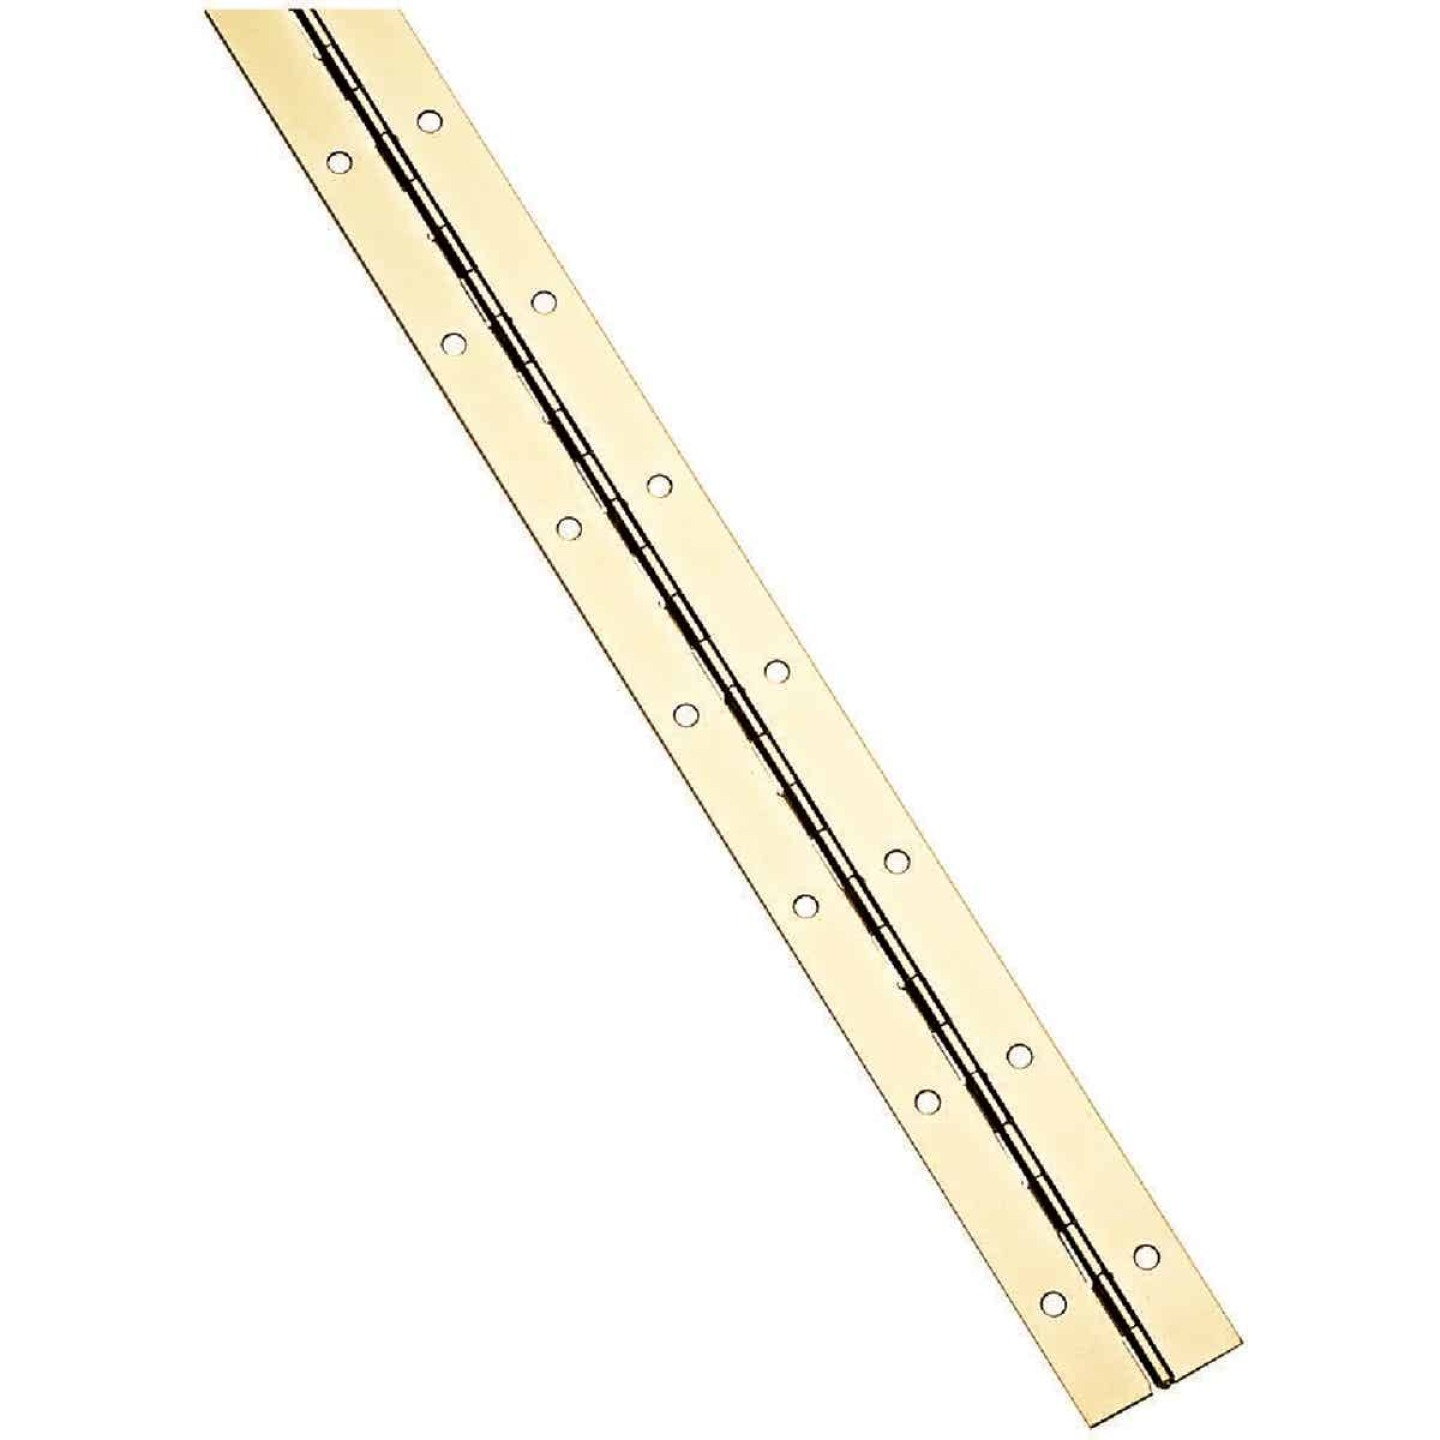 National Steel 1-1/2 In. x 72 In. Bright Brass Continuous Hinge Image 1